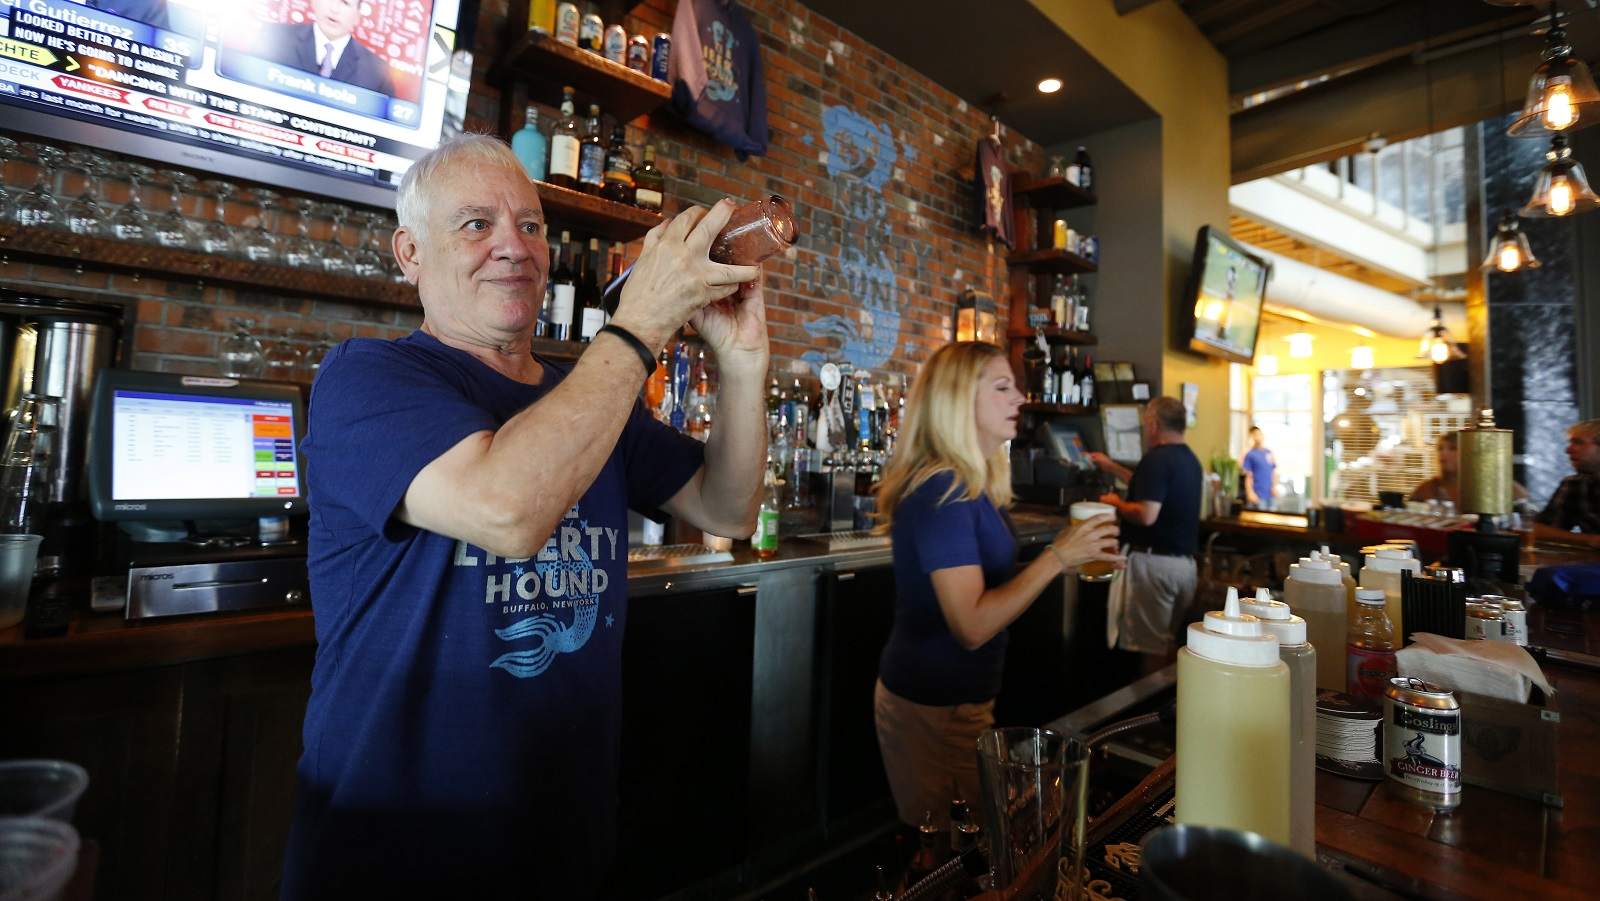 Marty Loesch mixes a drink at the Liberty Hound in Buffalo Thursday, August 24, 2016.       (Mark Mulville/Buffalo News)